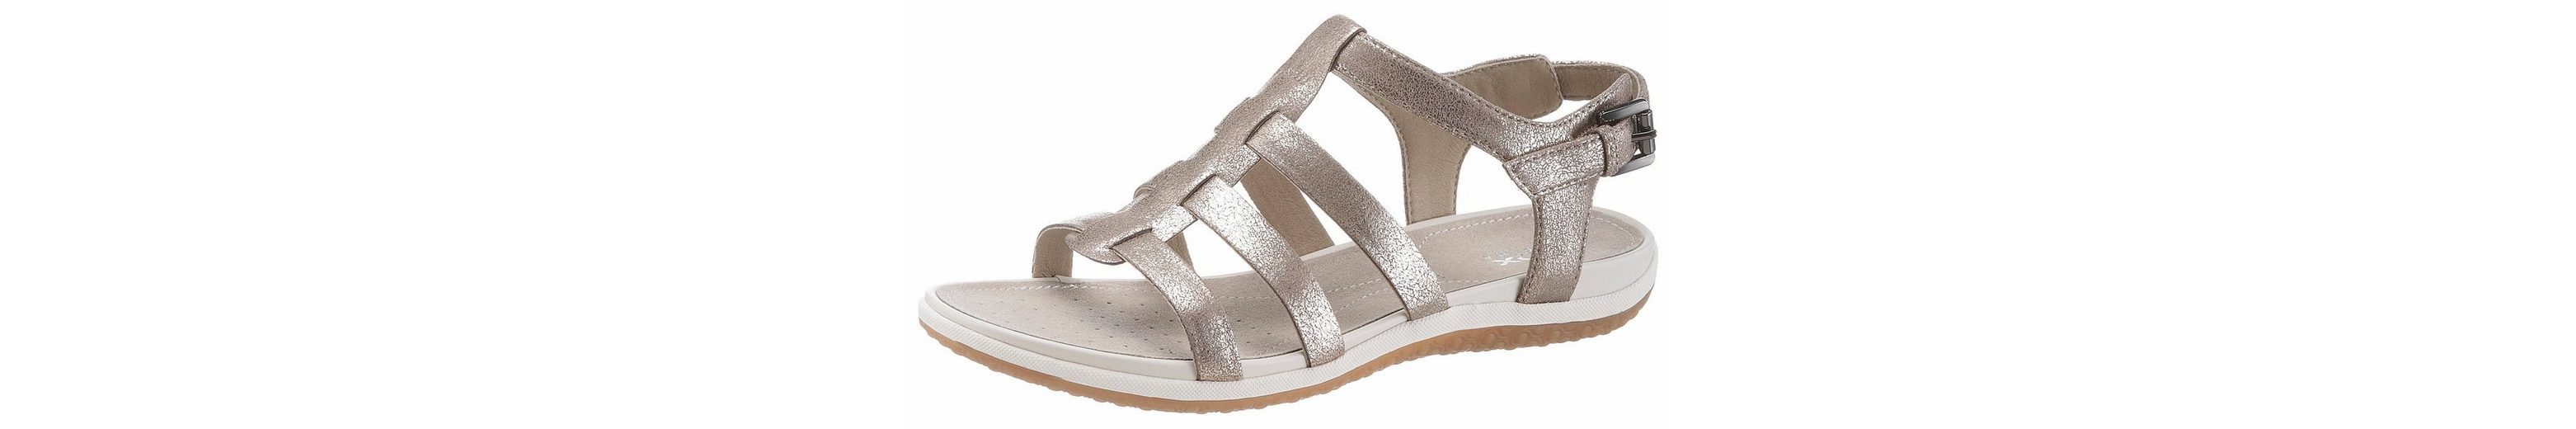 Geox SANDAL VEGA Sandale, in Metallic-Optik